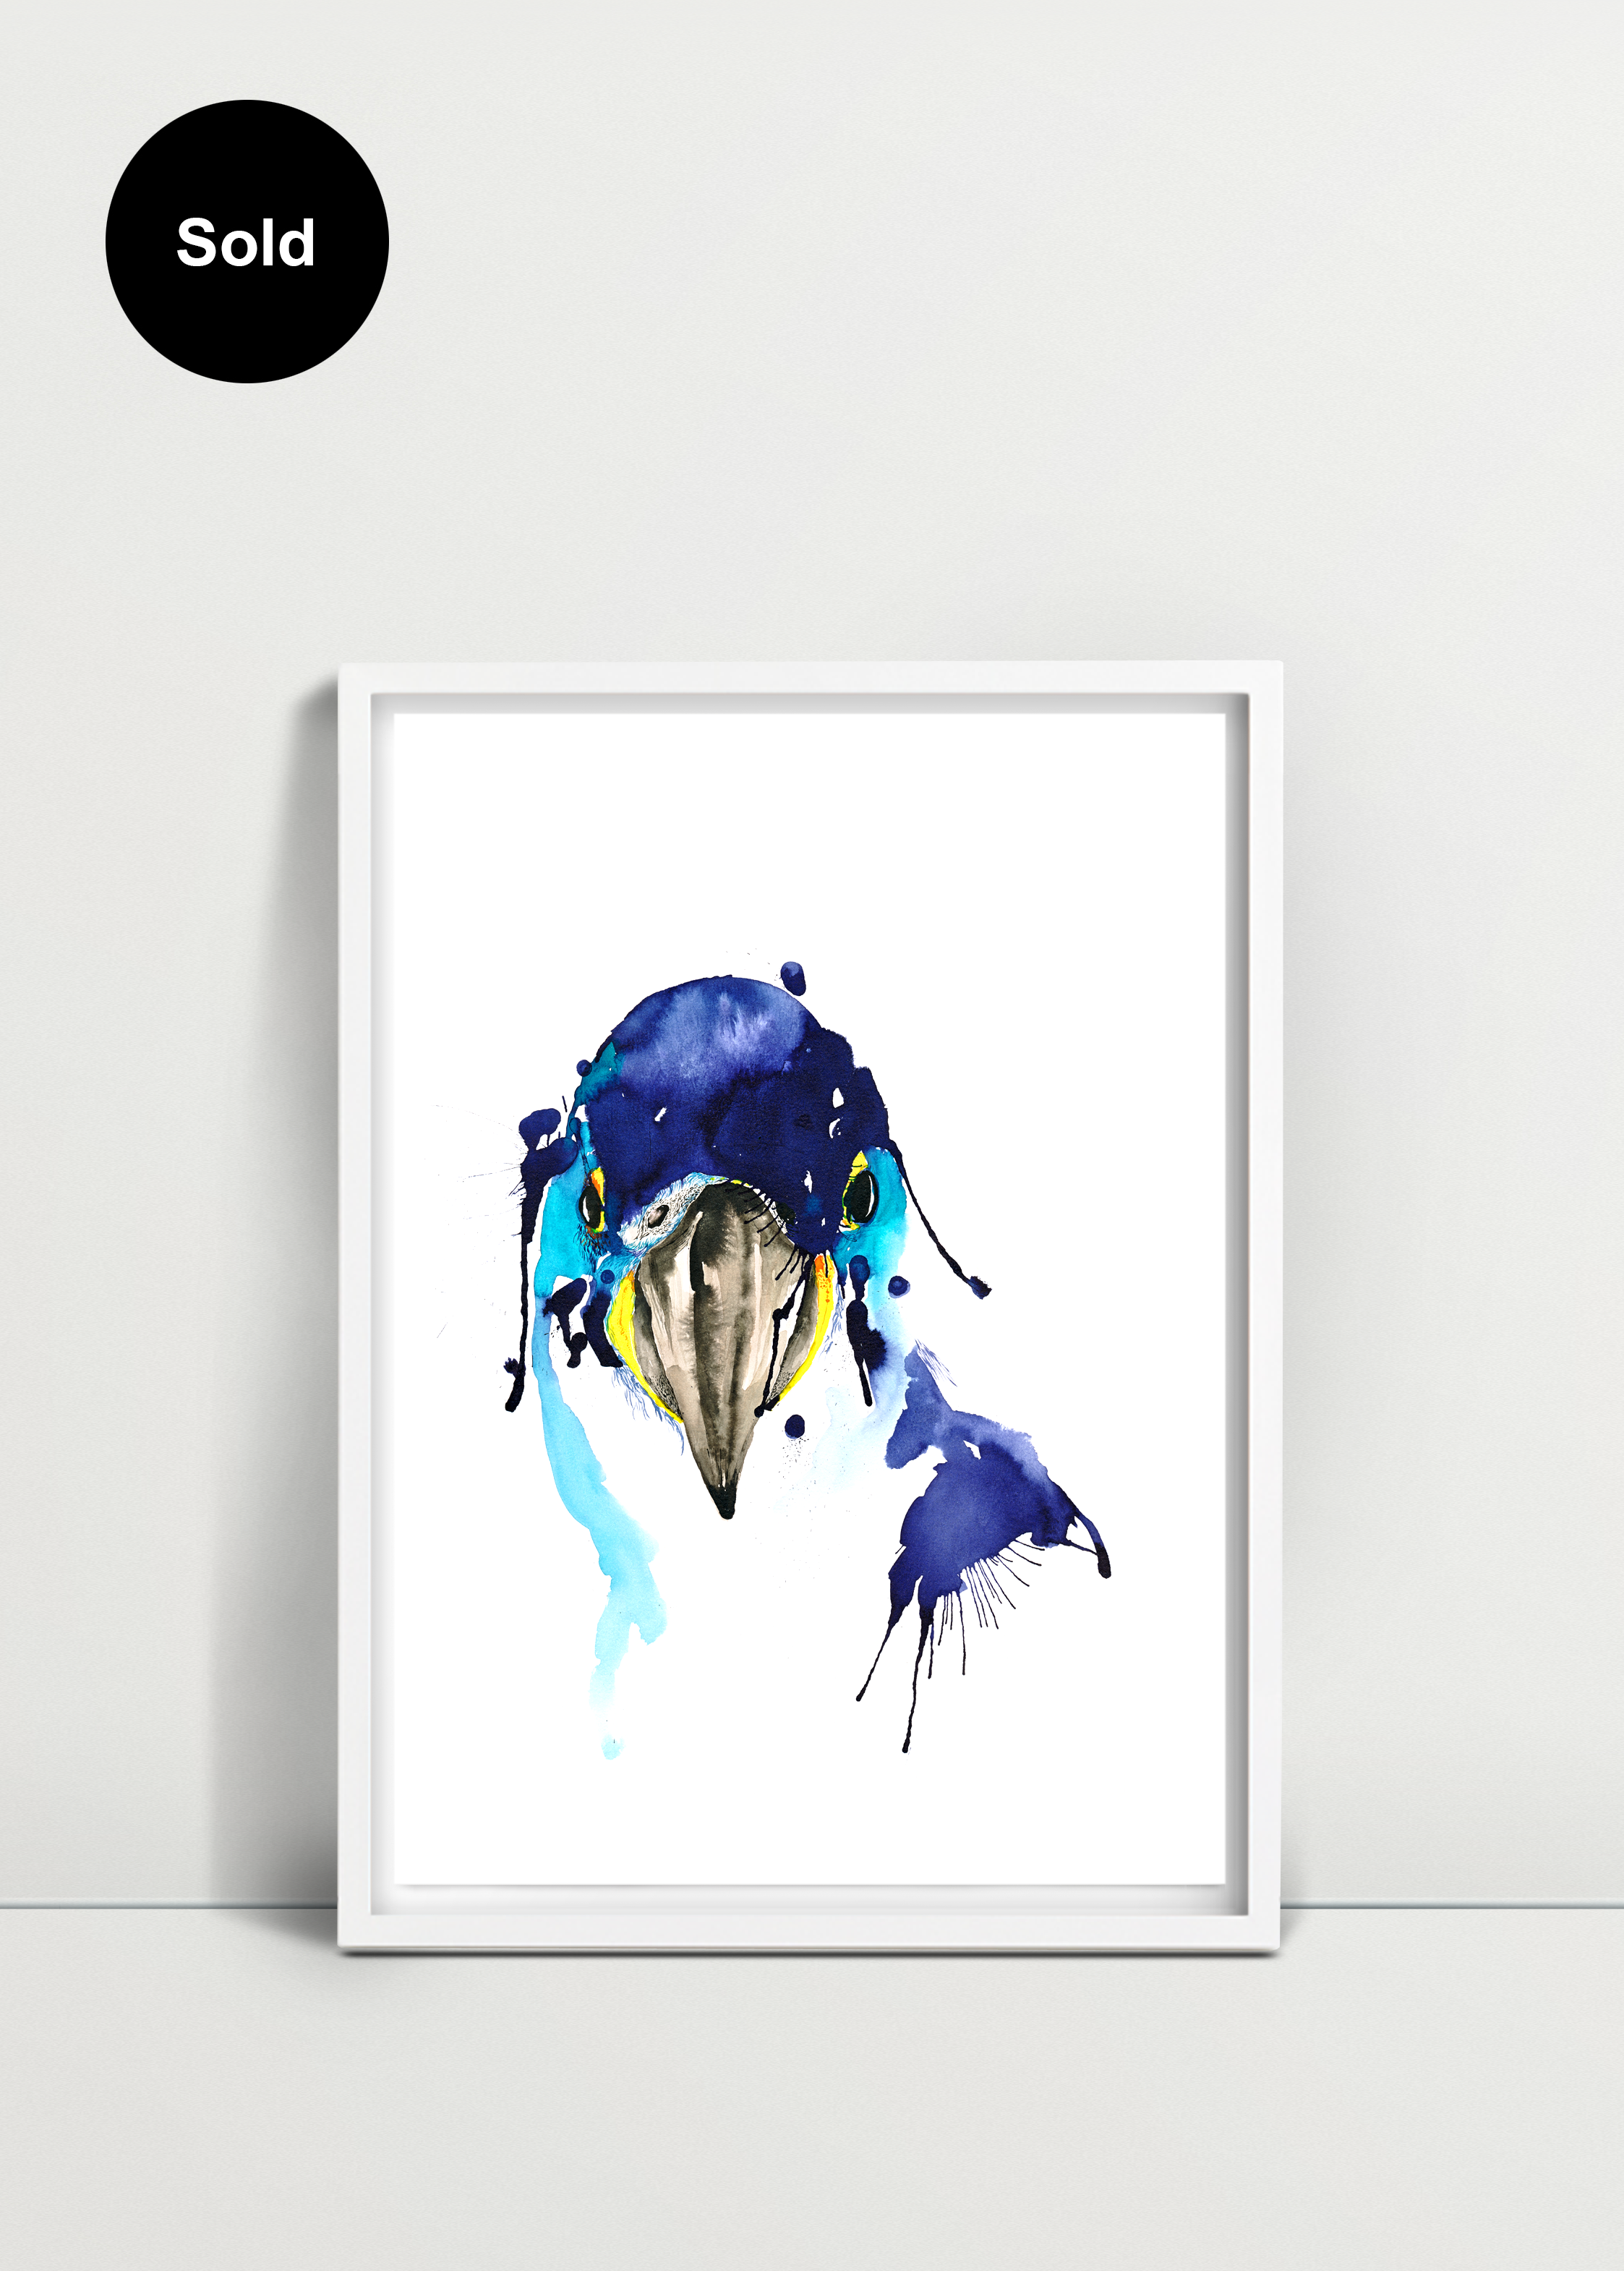 Parrot_20-SOLD.png